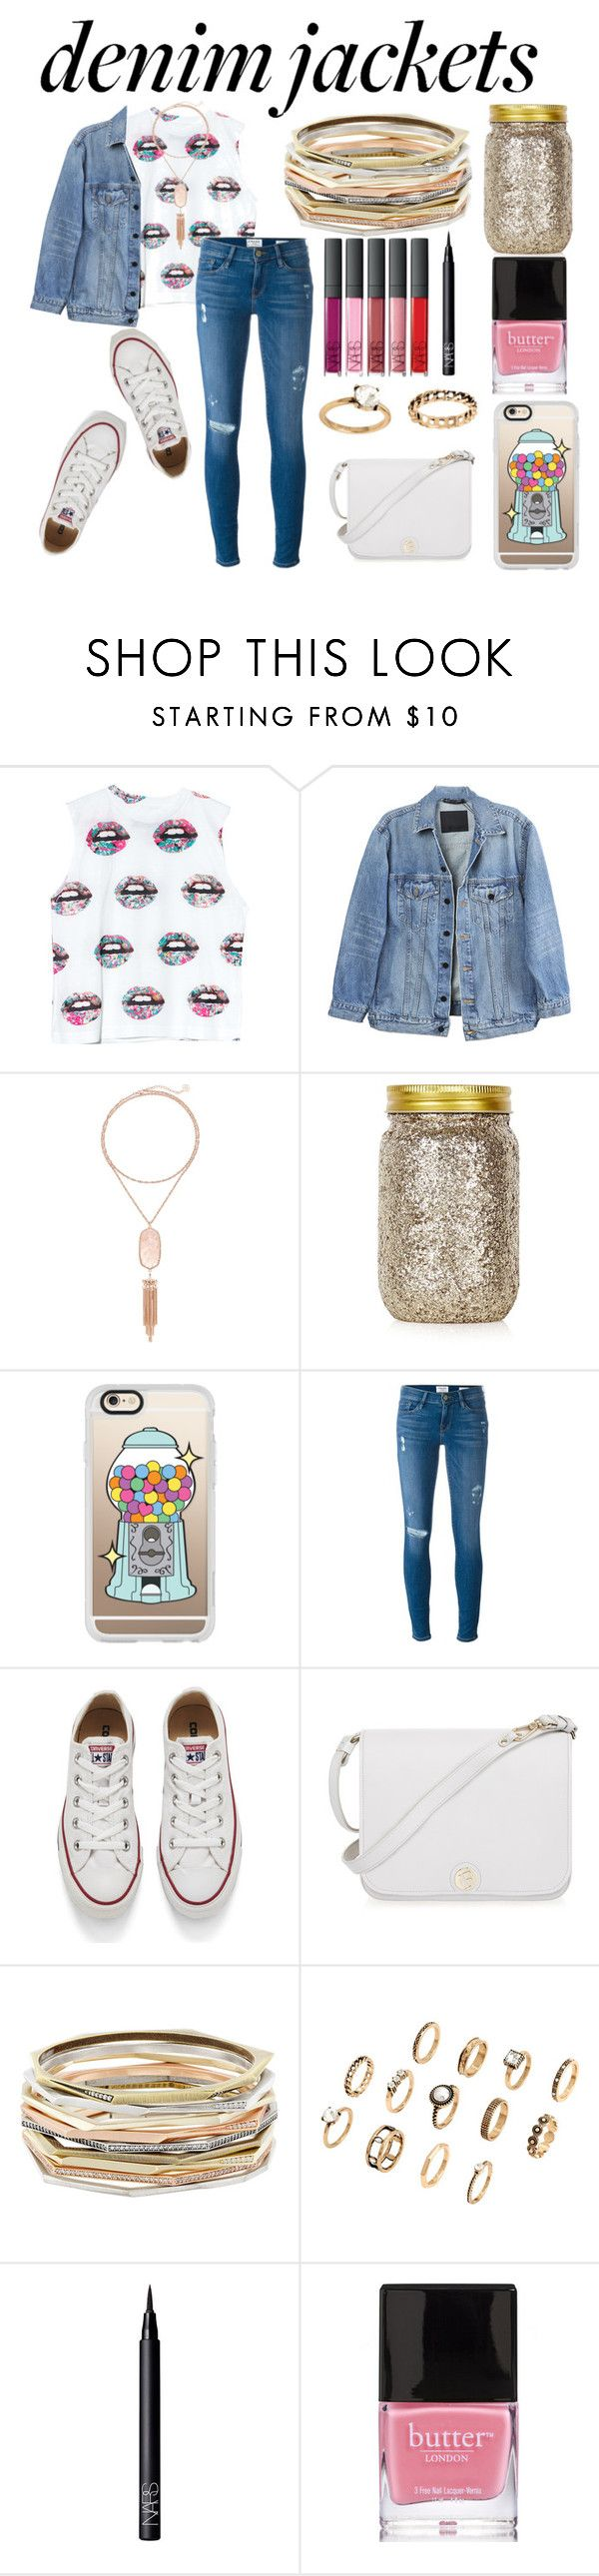 """""""Denim Jacket"""" by artwonders97 ❤ liked on Polyvore featuring Civil, Y/Project, Kendra Scott, Topshop, Casetify, Frame Denim, Converse, Furla, NARS Cosmetics and Butter London"""